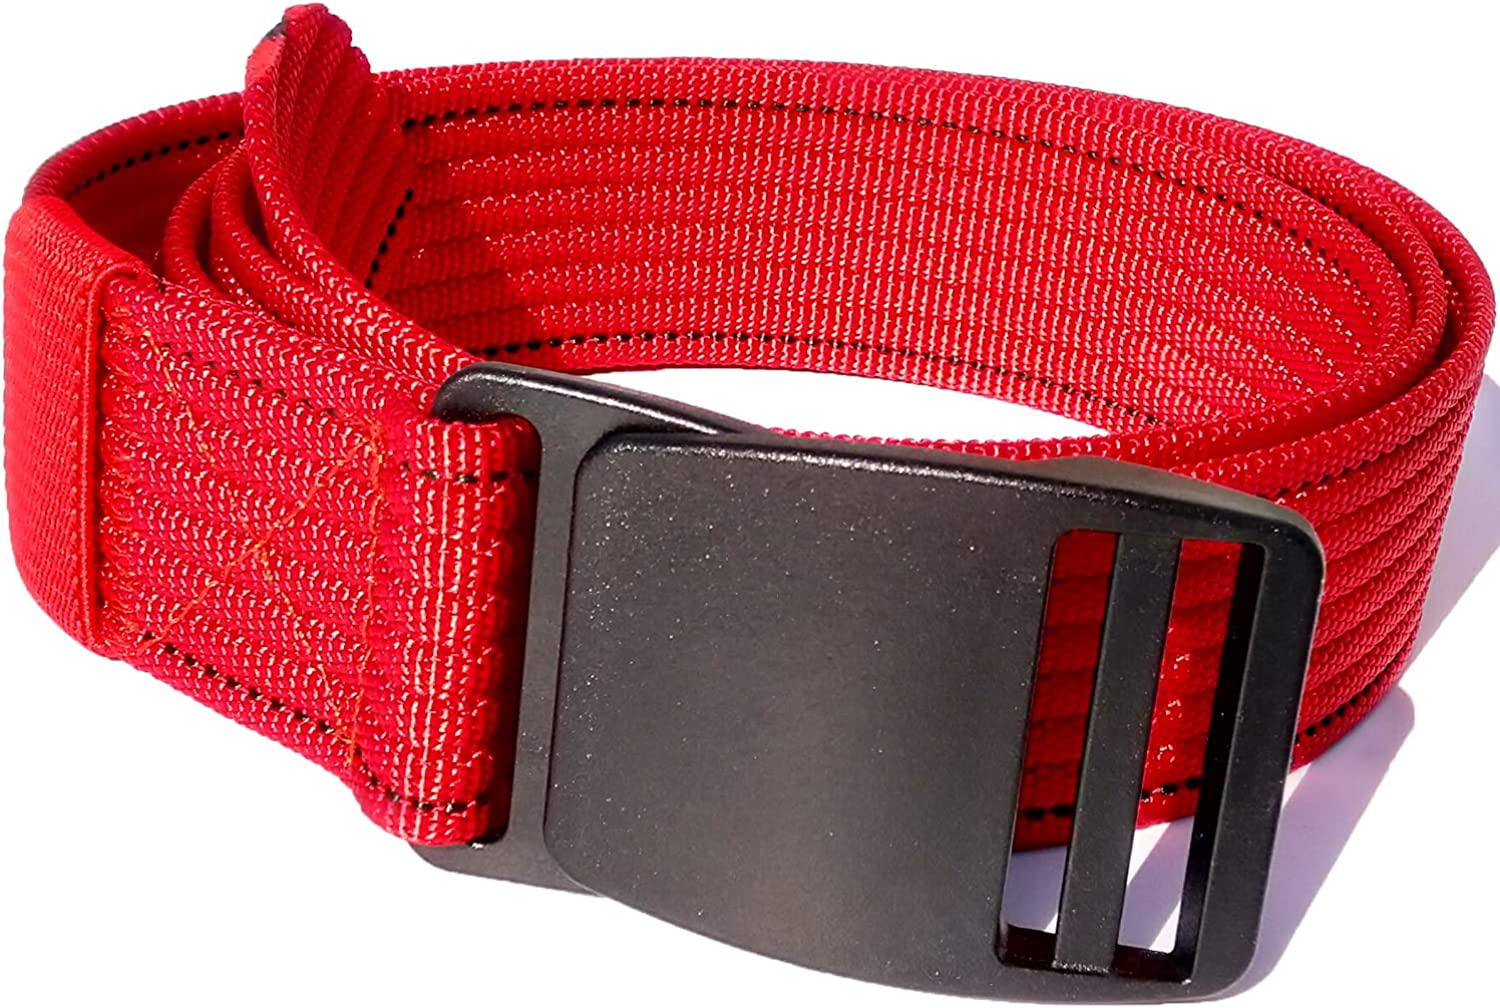 L XL Airport Casual 100/% Nylon Belt For Men With Plastic Buckle Metal Free